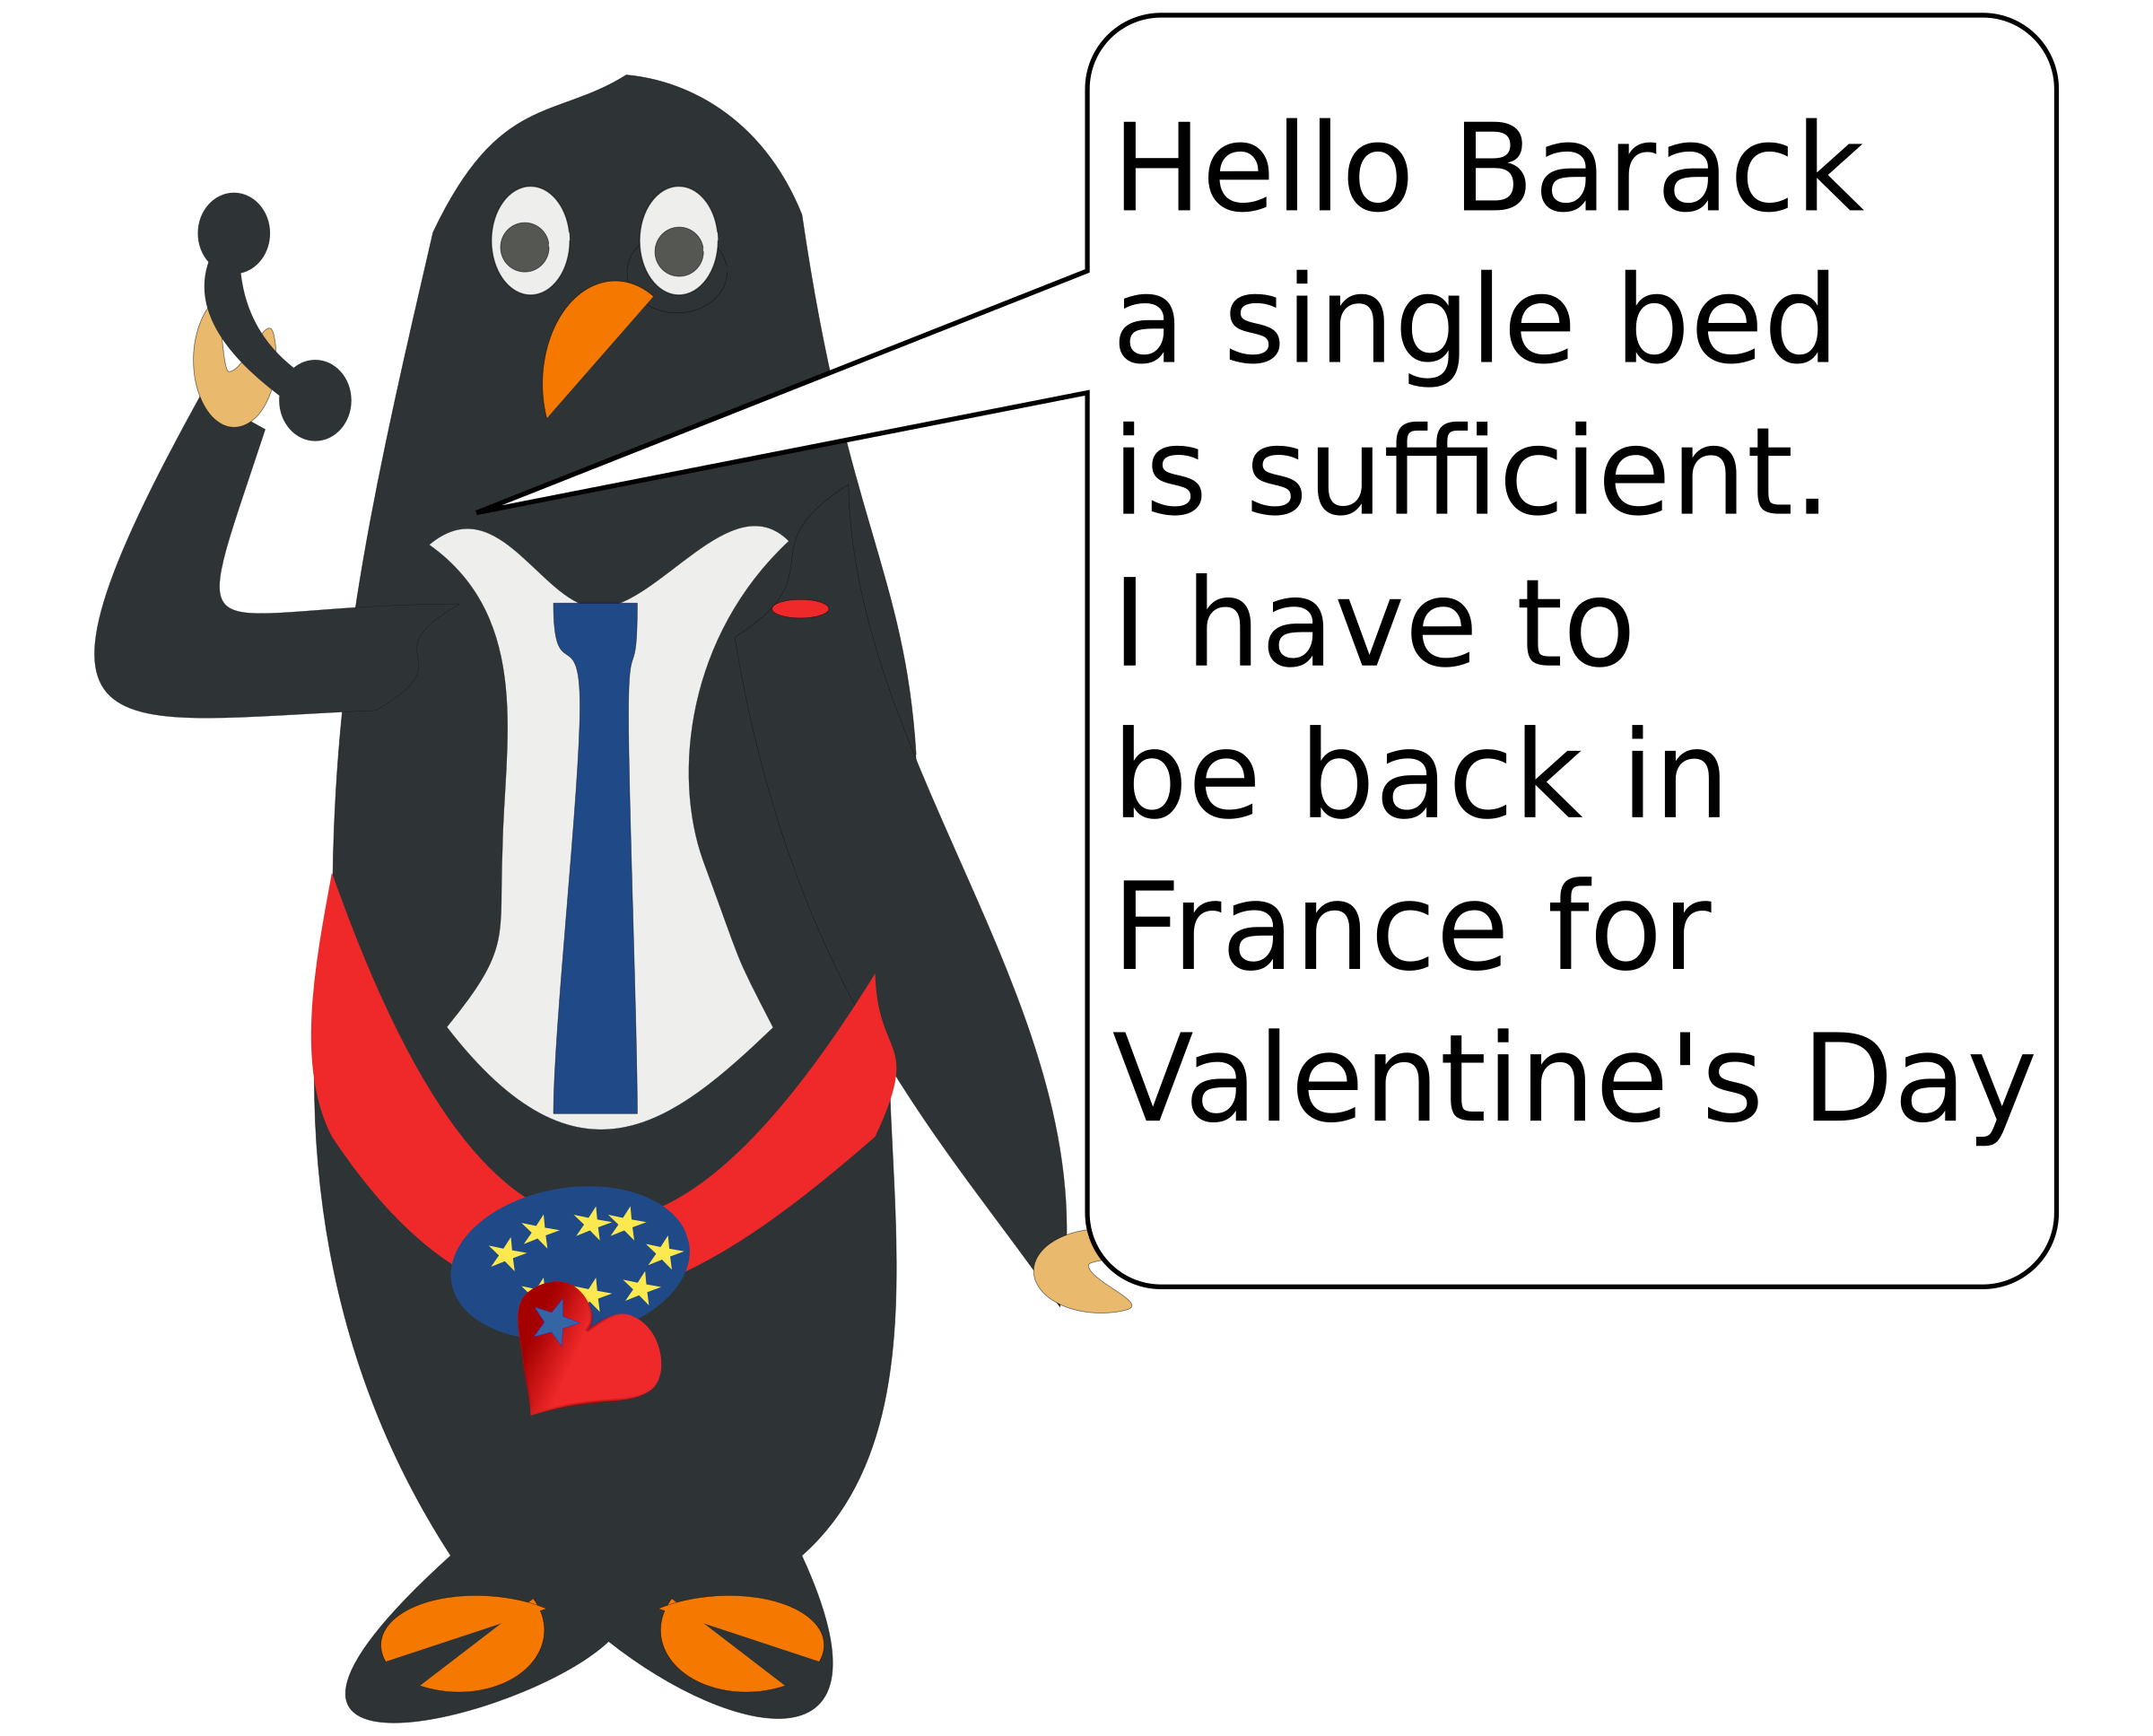 hello Barack! Here is Francis. by chatard